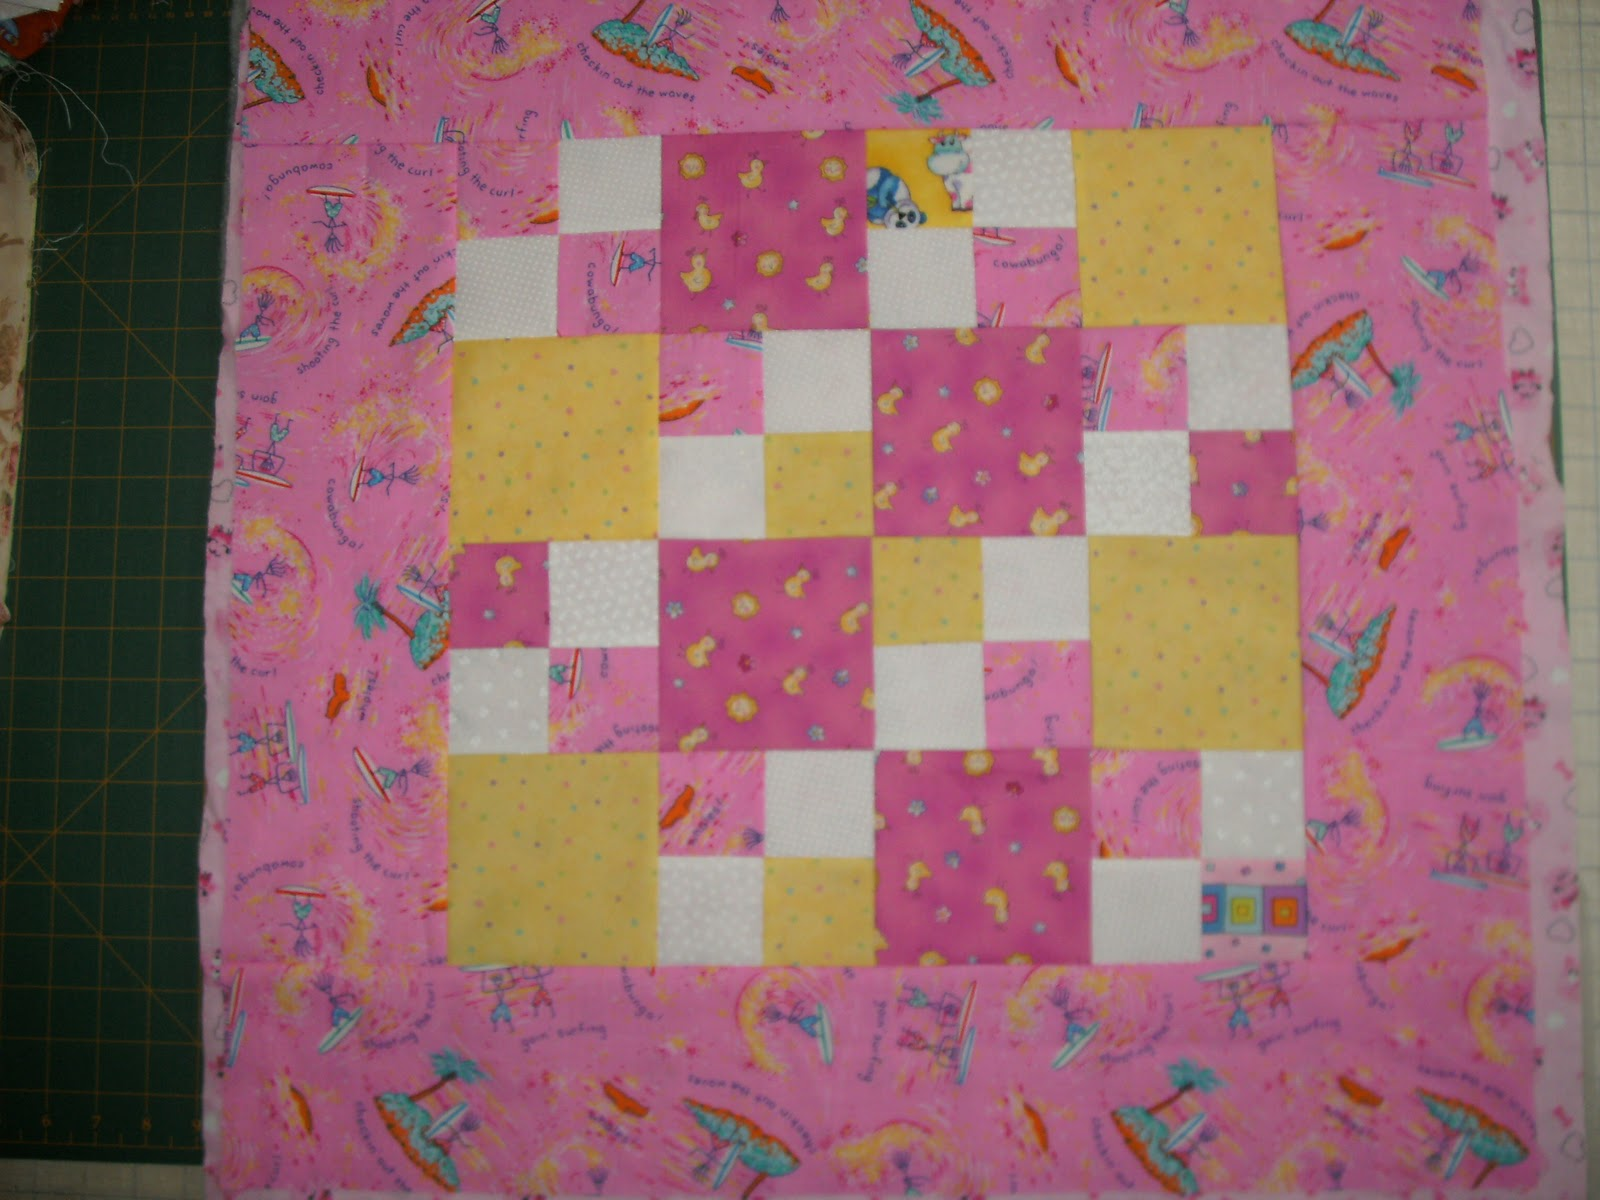 Sunshower Quilts Making Scrappy Preemie Quilt with the Accuquilt Go! # Sunshower Goes_064641